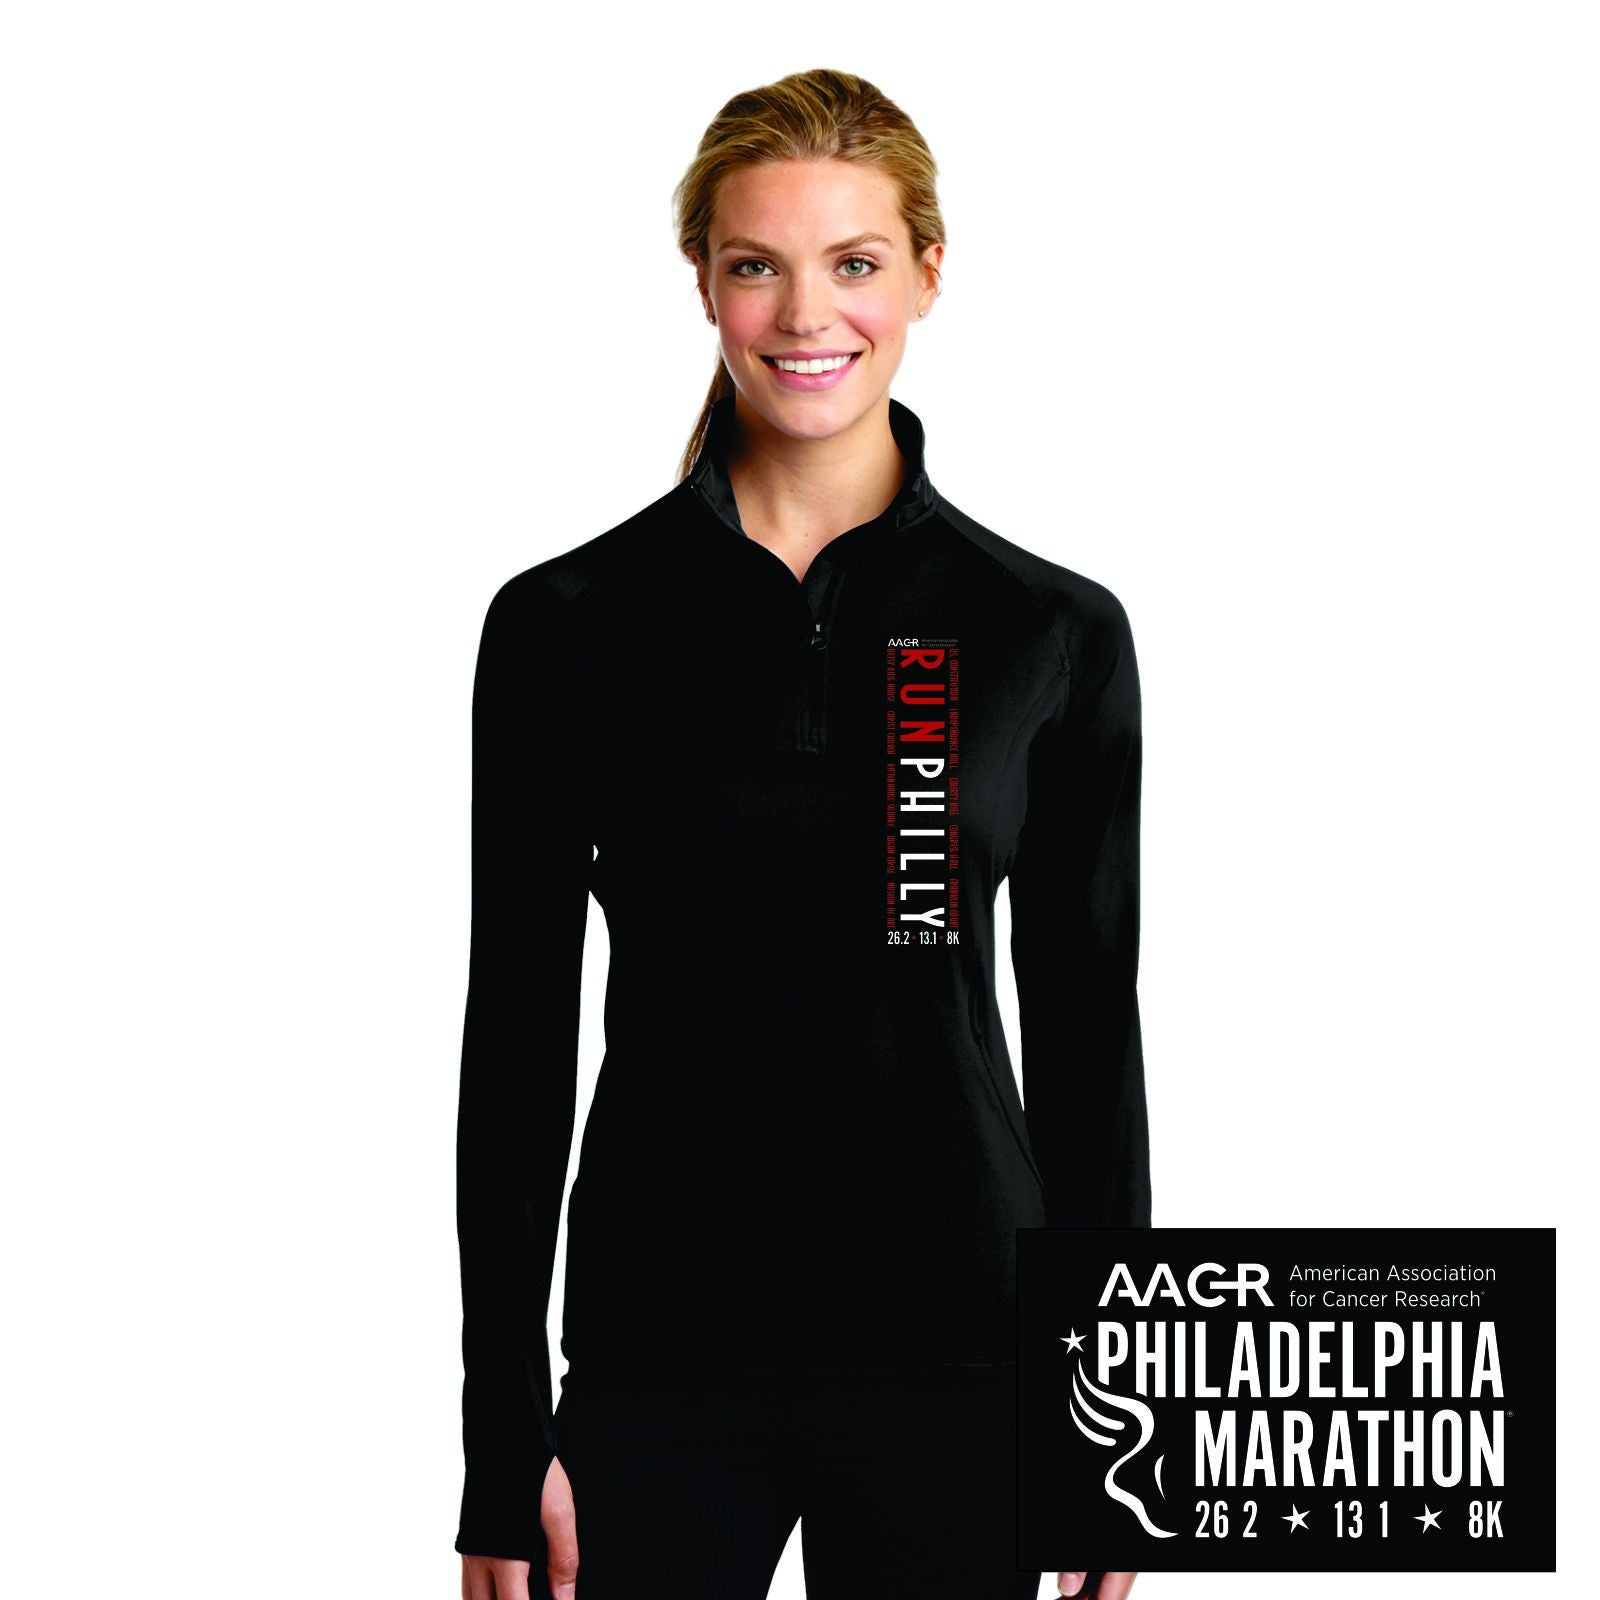 Women's Thumbhole Stretch 1/2 Zip - Black 'LCP Vertical' Design - AACR Philadelphia Marathon